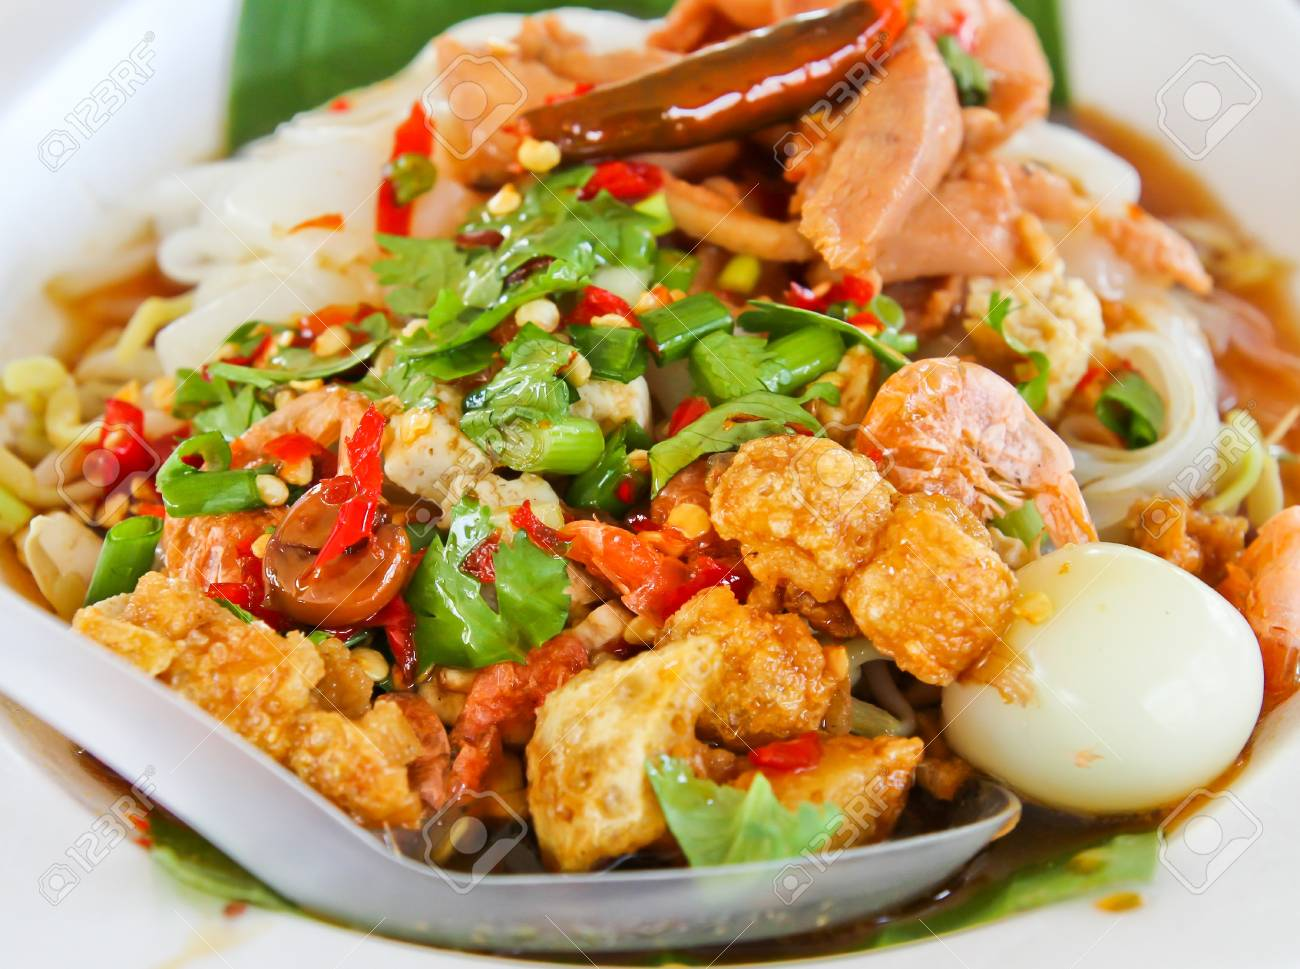 Pad Thai noodle dishes with many ingredients Stock Photo - 17289866